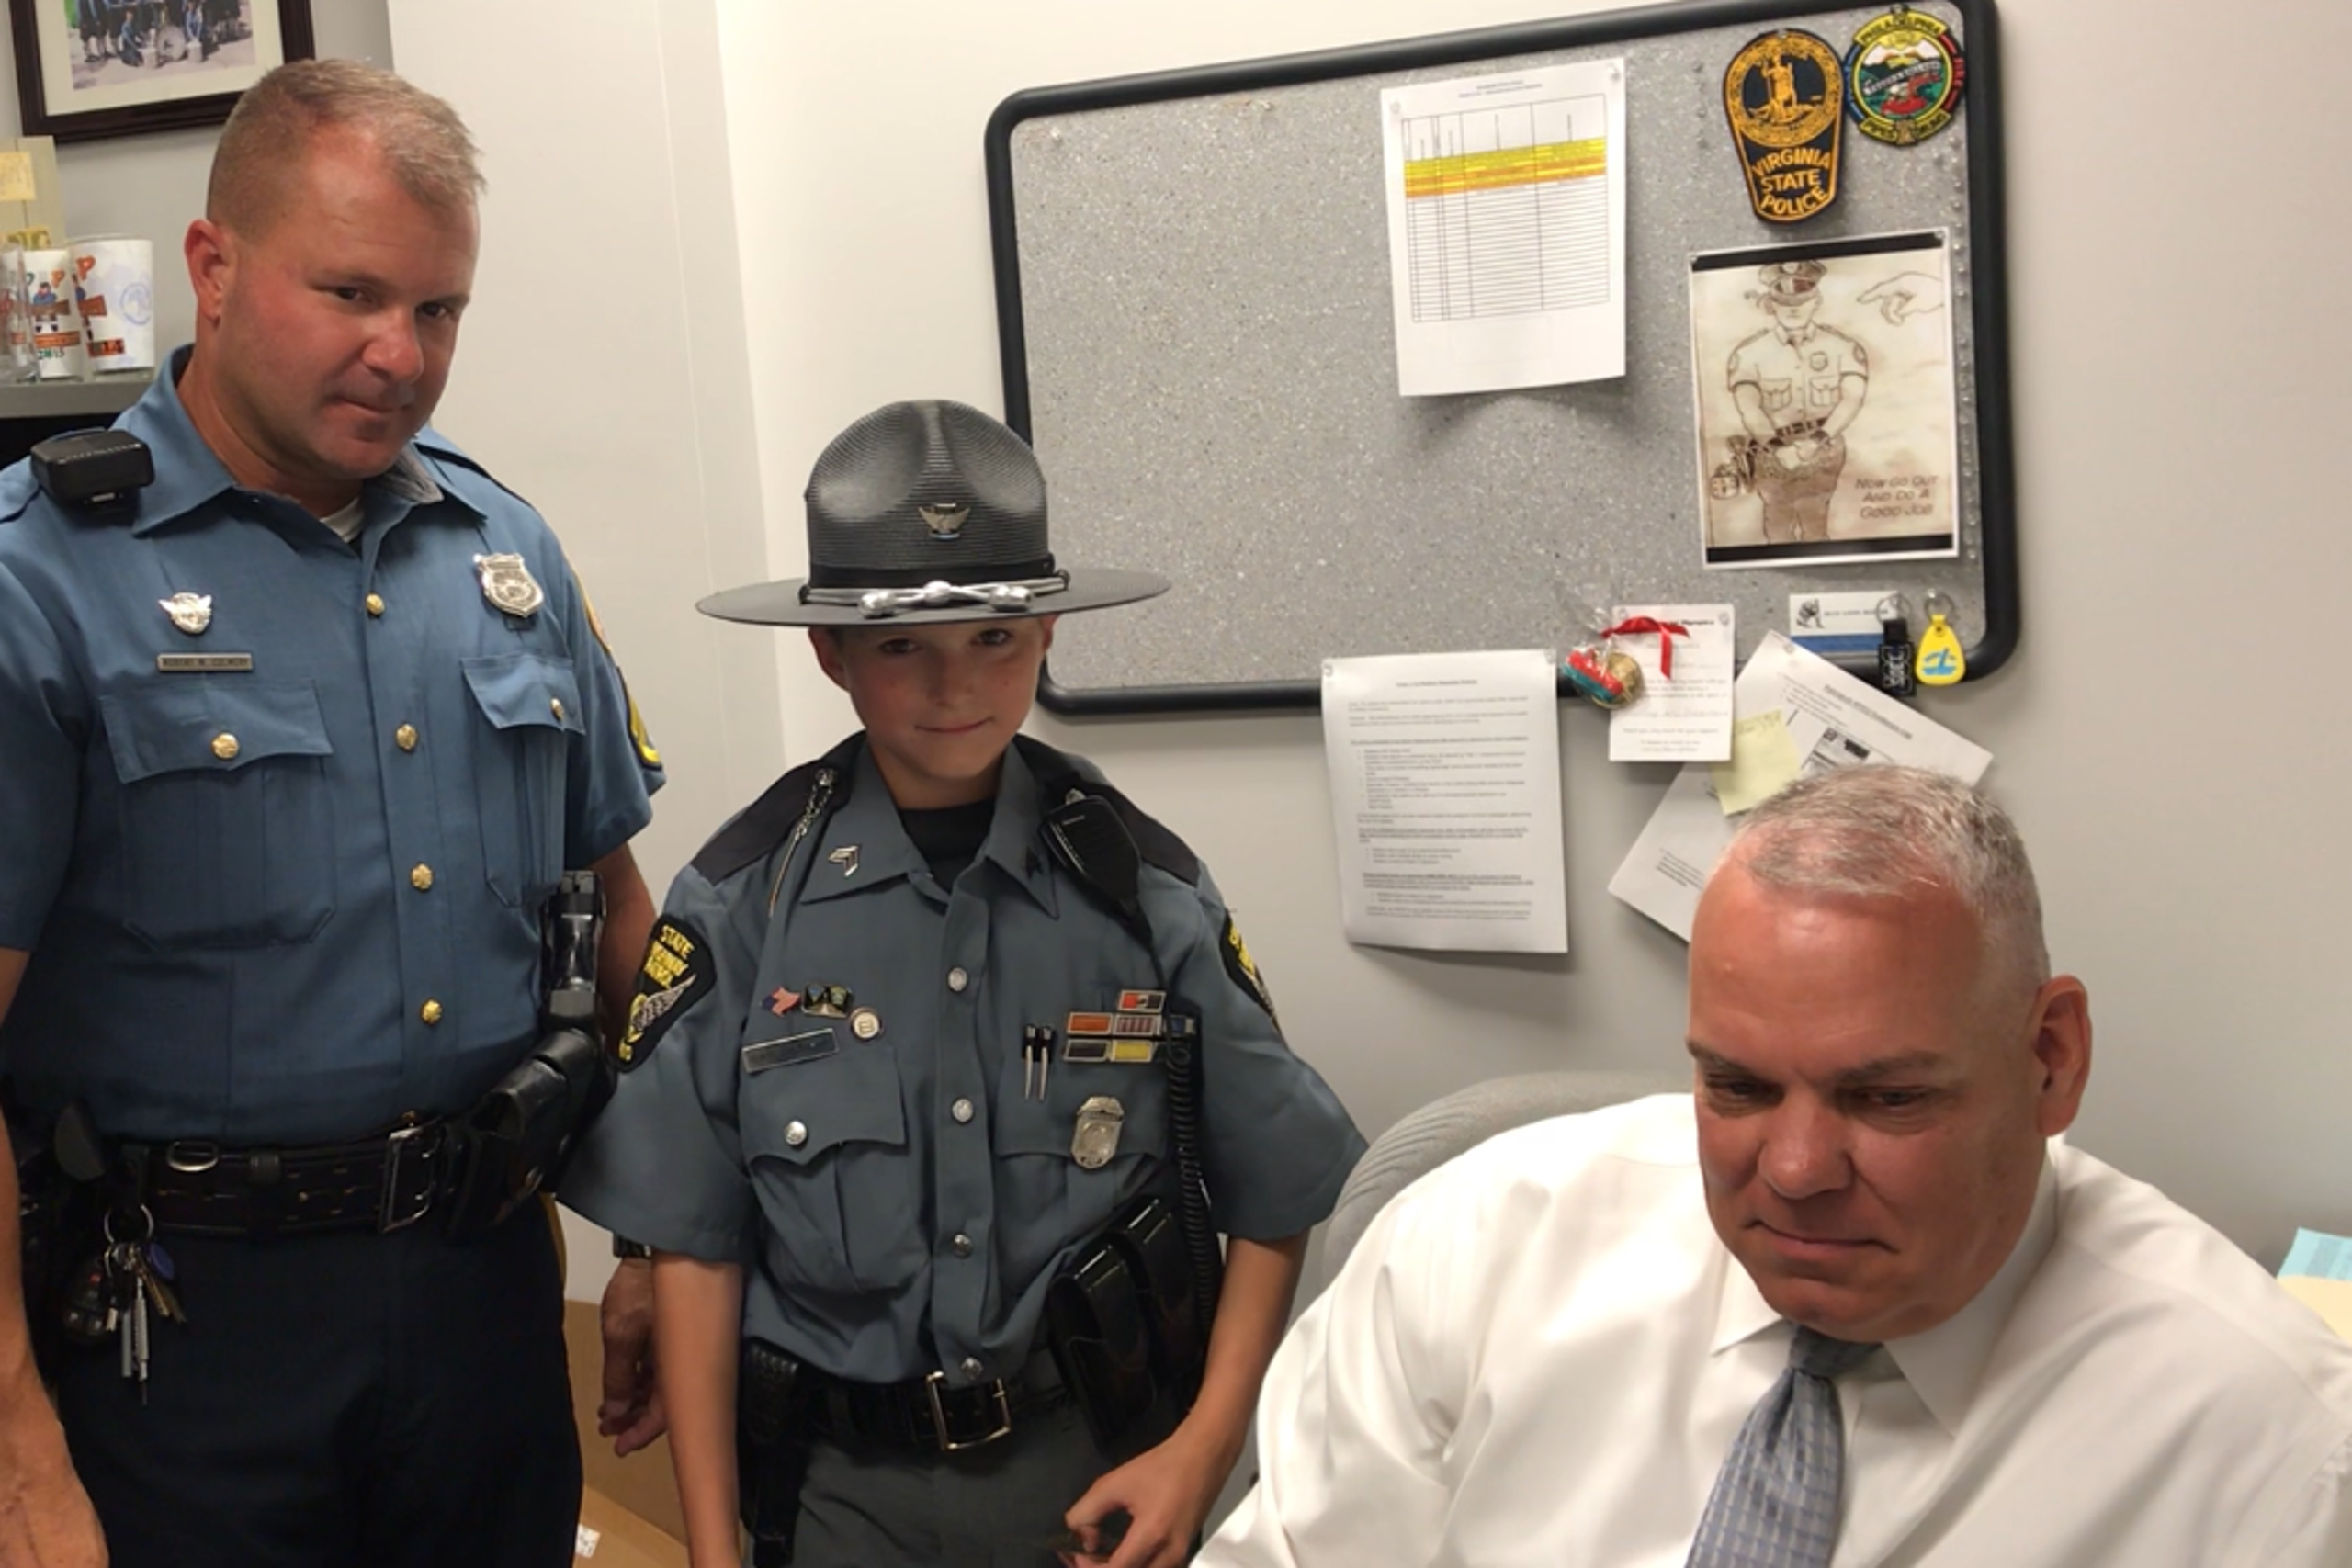 Michigan boy stops in Delaware on quest to meet police in 50